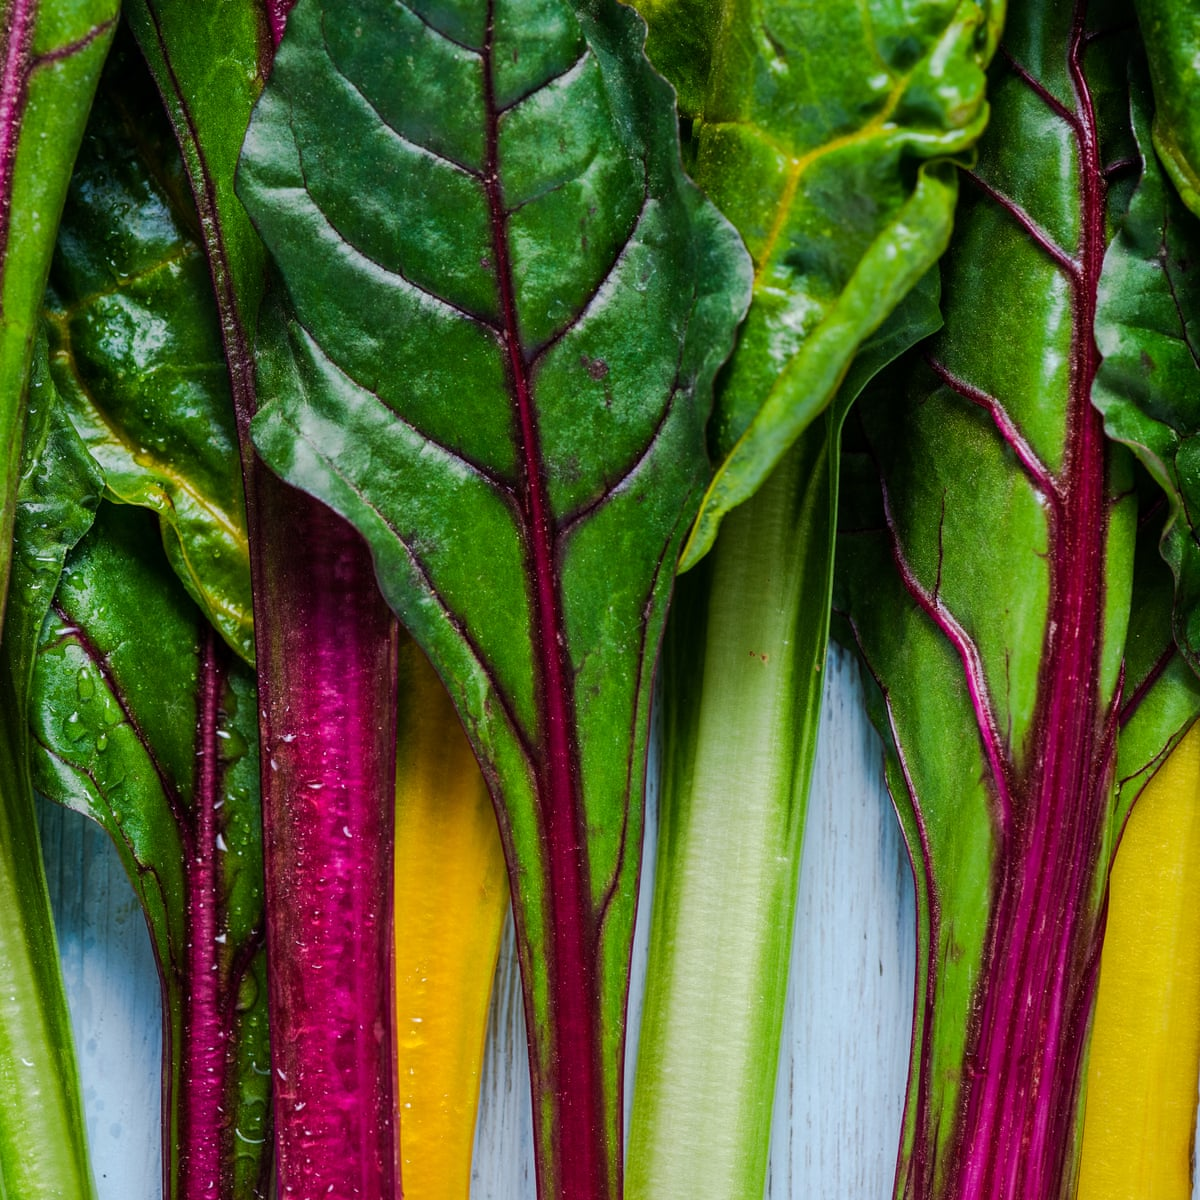 It S Not Too Late To Plant Swiss Chard Gardening Advice The Guardian